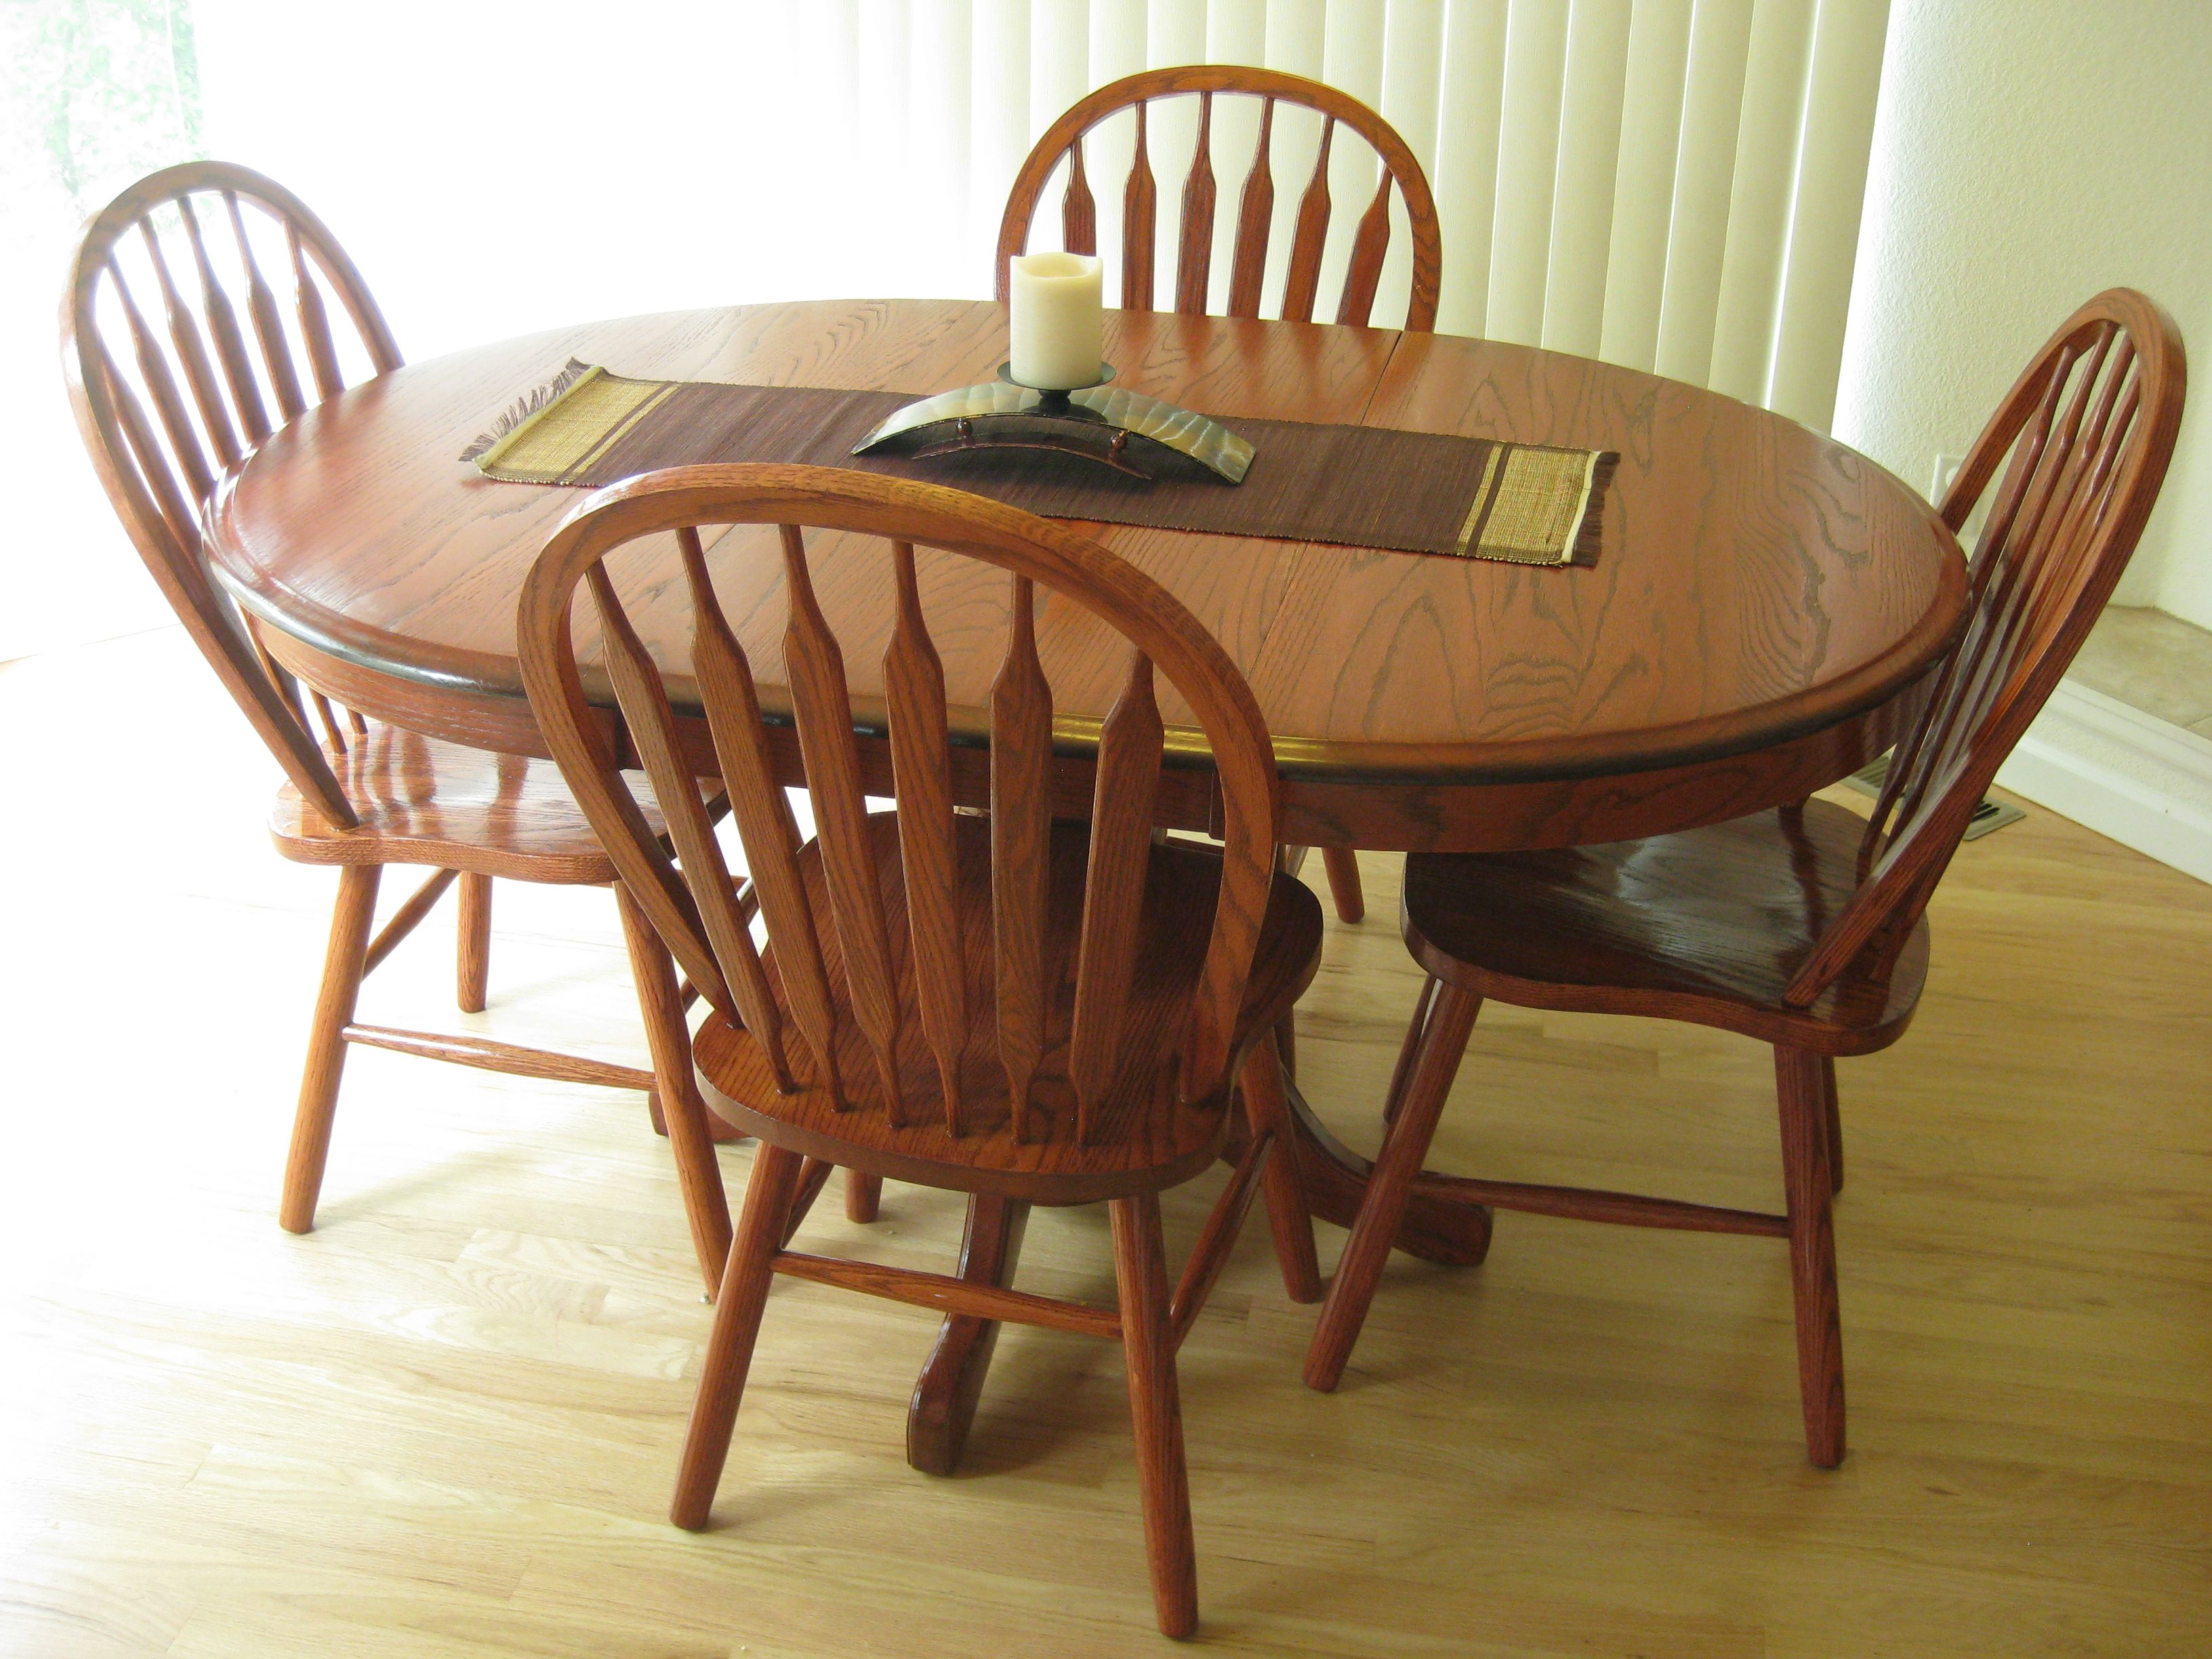 Refinished Shin Lee Oak 5 Piece Dining Set With Leaf American